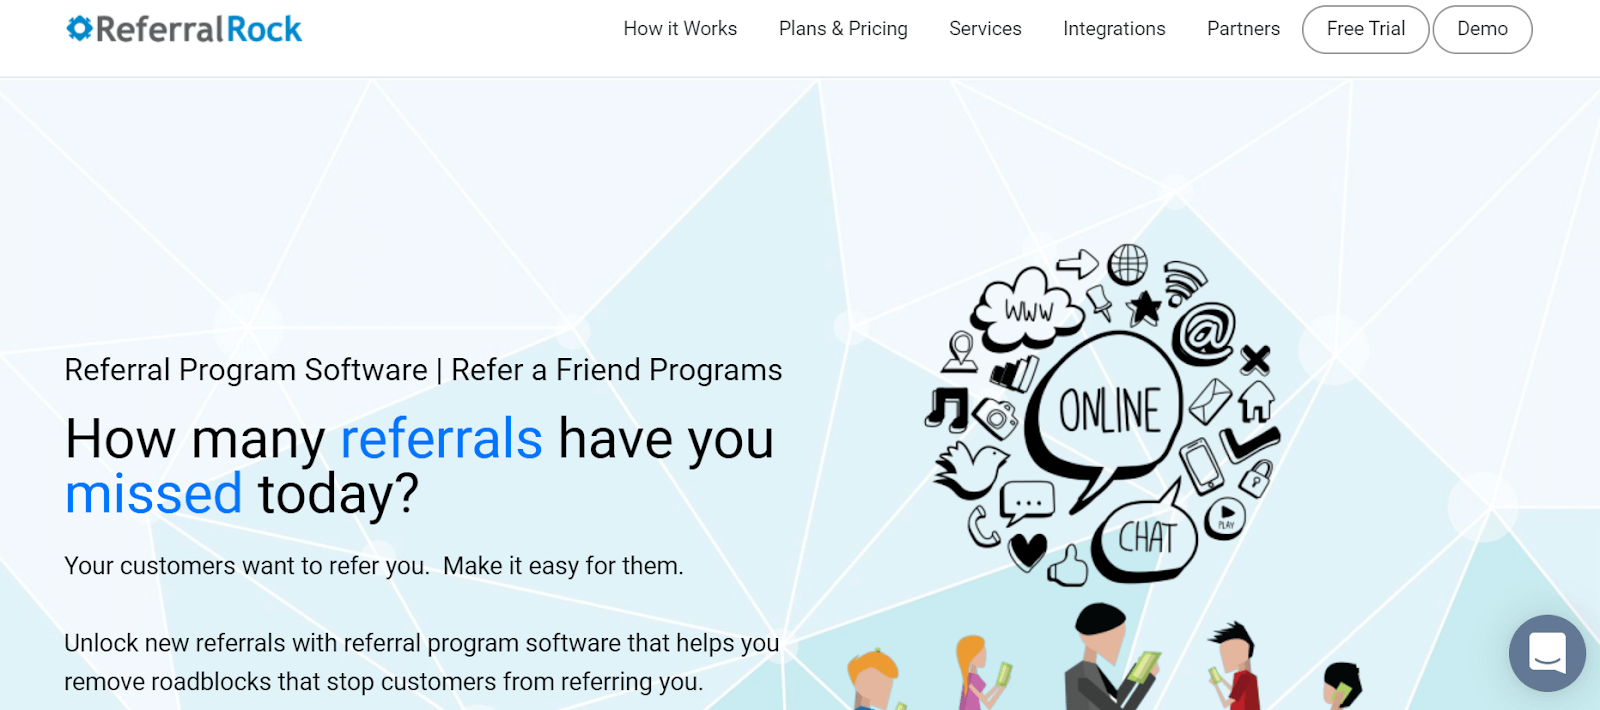 Referral Rock Referral Marketing Software Tool